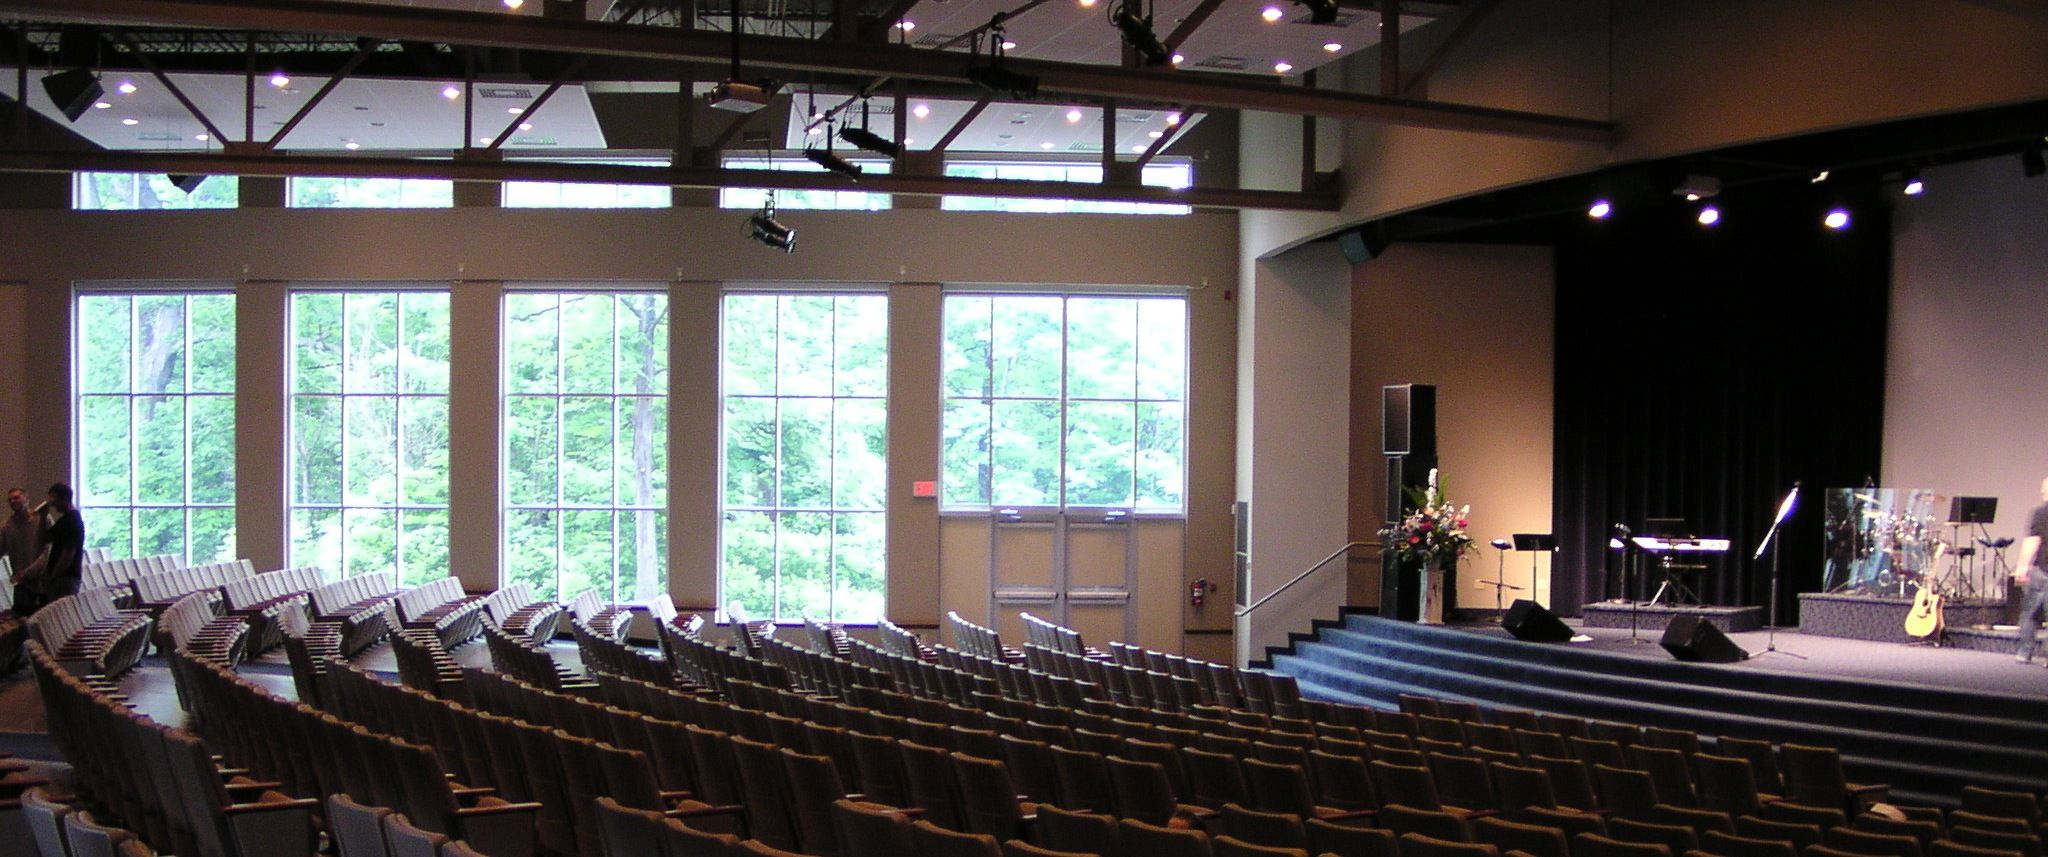 sanctuary designs for small churches church design dedicated sanctuary or multi purpose auditorium - Small Church Sanctuary Design Ideas